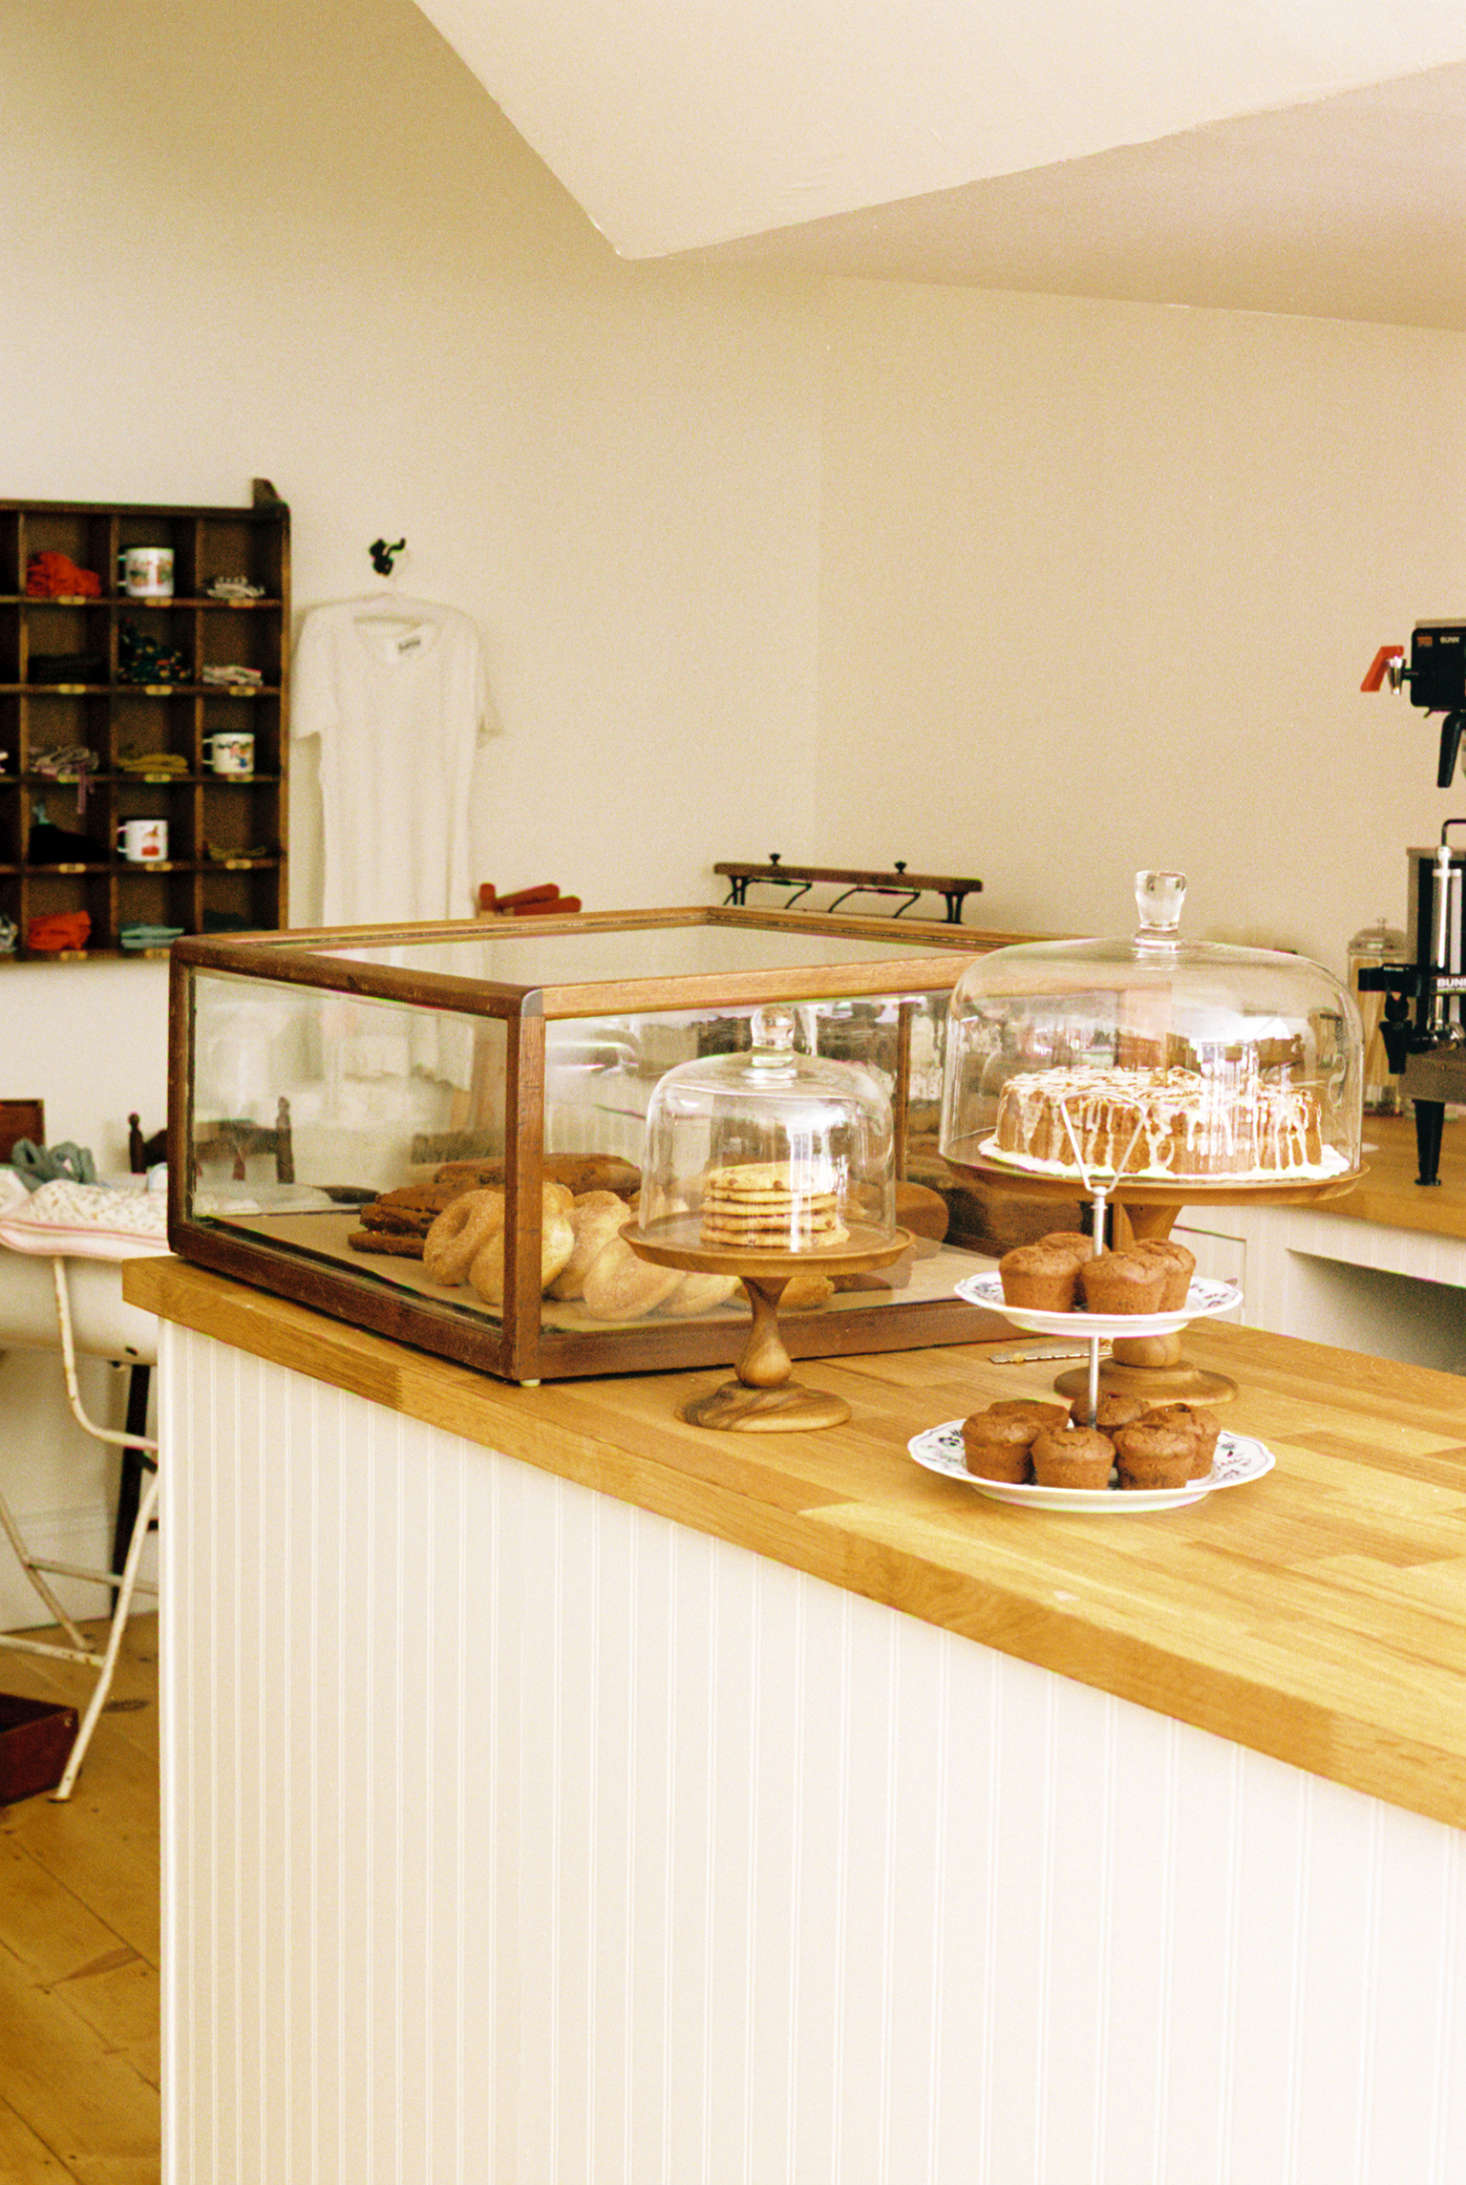 The shop has a small cafe serving tea, coffee, and vegan baked goods, with artists working the espresso machine.